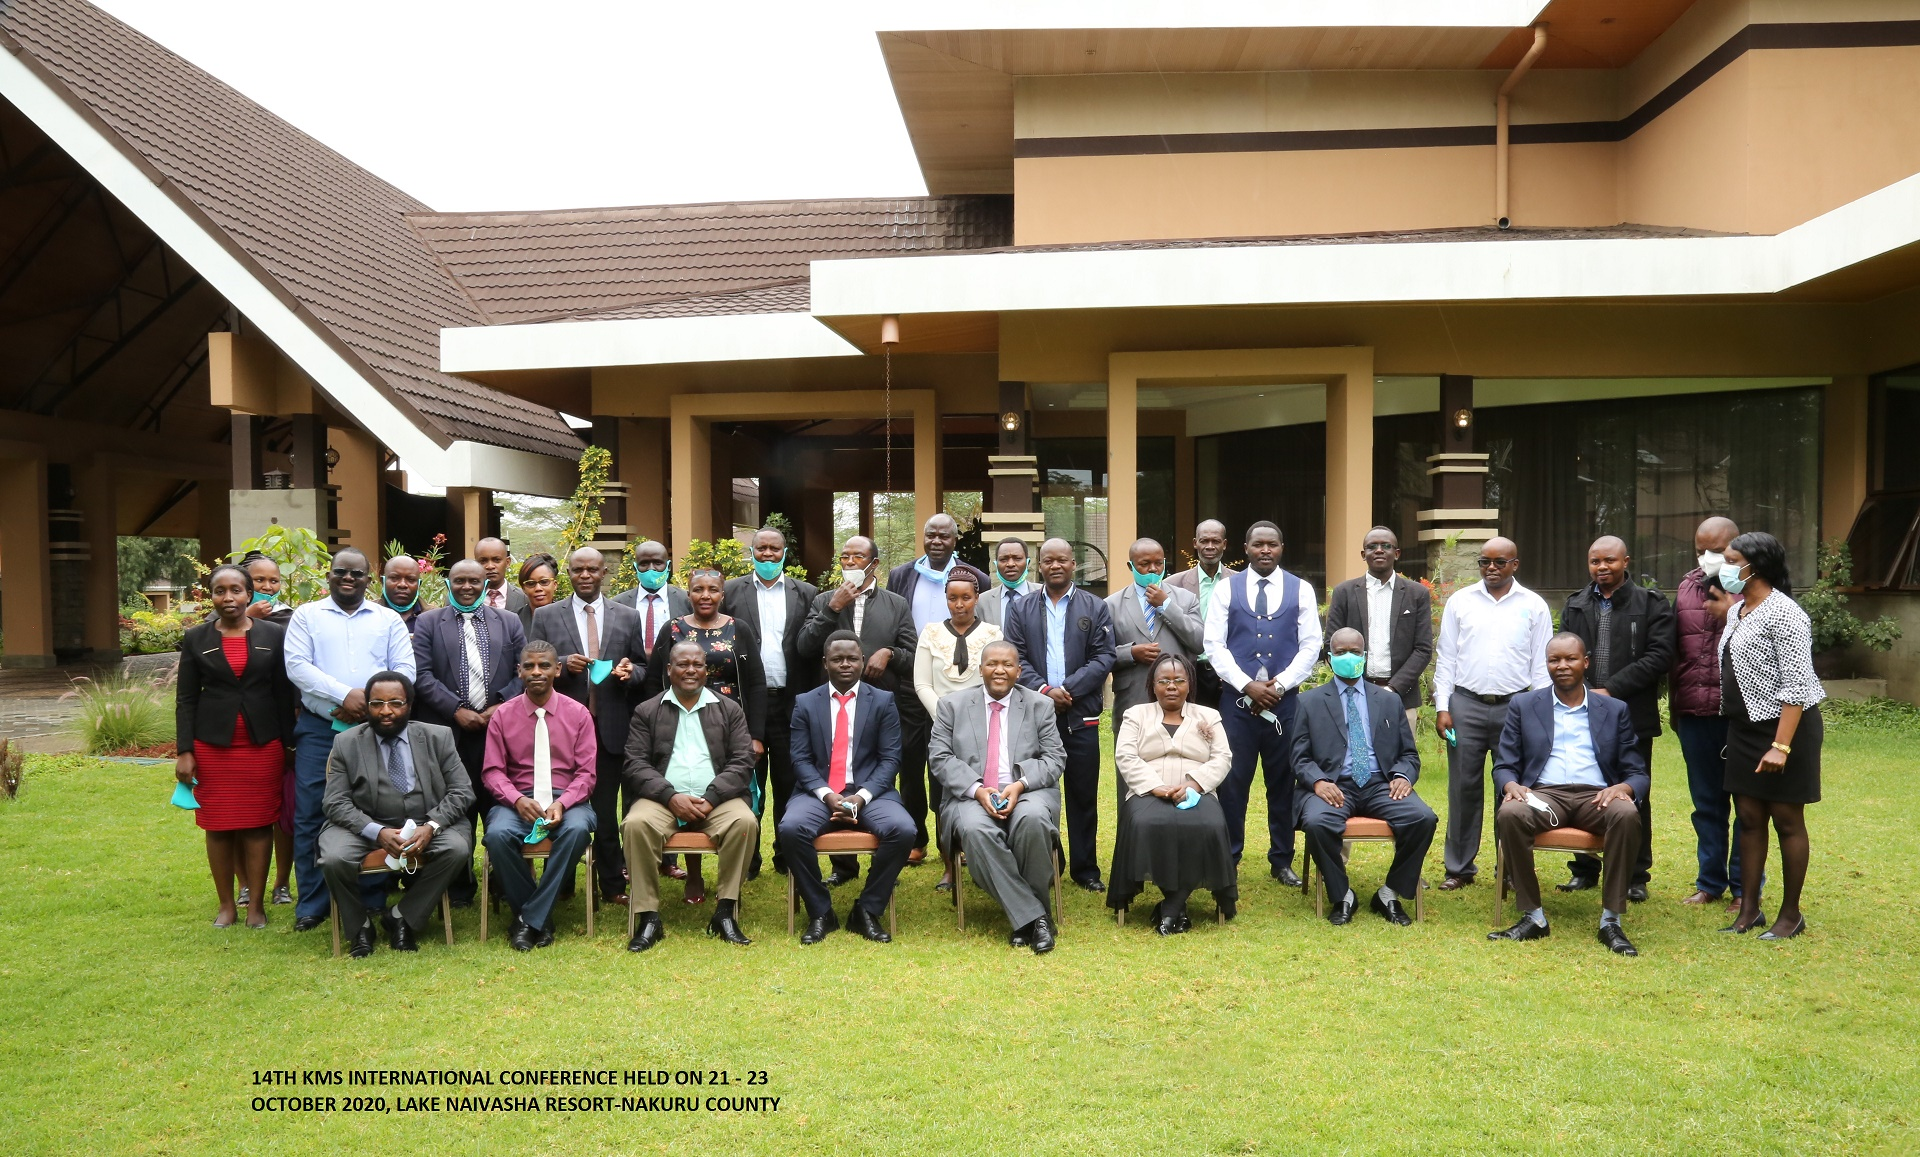 14conference_group_photo.jpg